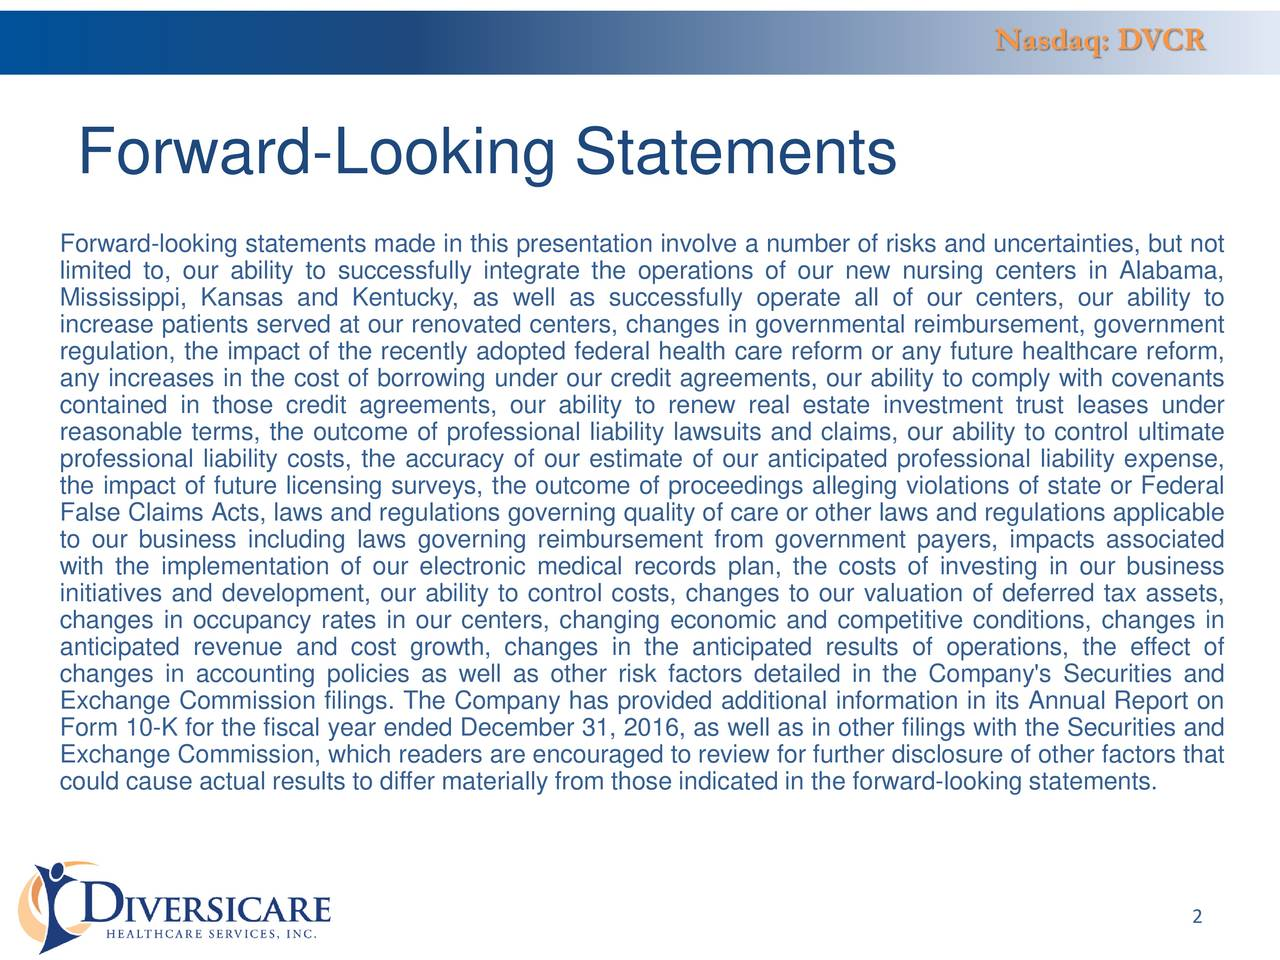 Forward-Looking Statements Forward-looking statements made in this presentation involve a number of risks and uncertainties, but not limited to, our ability to successfully integrate the operations of our new nursing centers in Alabama, Mississippi, Kansas and Kentucky, as well as successfully operate all of our centers, our ability to increase patients served at our renovated centers, changes in governmental reimbursement, government regulation, the impact of the recently adopted federal health care reform or any future healthcare reform, any increases in the cost of borrowing under our credit agreements, our ability to comply with covenants contained in those credit agreements, our ability to renew real estate investment trust leases under reasonable terms, the outcome of professional liability lawsuits and claims, our ability to control ultimate professional liability costs, the accuracy of our estimate of our anticipated professional liability expense, the impact of future licensing surveys, the outcome of proceedings alleging violations of state or Federal False Claims Acts, laws and regulations governing quality of care or other laws and regulations applicable to our business including laws governing reimbursement from government payers, impacts associated with the implementation of our electronic medical records plan, the costs of investing in our business initiatives and development, our ability to control costs, changes to our valuation of deferred tax assets, changes in occupancy rates in our centers, changing economic and competitive conditions, changes in anticipated revenue and cost growth, changes in the anticipated results of operations, the effect of changes in accounting policies as well as other risk factors detailed in the Company's Securities and Exchange Commission filings. The Company has provided additional information in its Annual Report on Form 10-K for the fiscal year ended December 31, 2016, as well as in other filings with the Securities and Exchange Commission, which readers are encouraged to review for further disclosure of other factors that could cause actual results to differ materially from those indicated in the forward-looking statements. 2